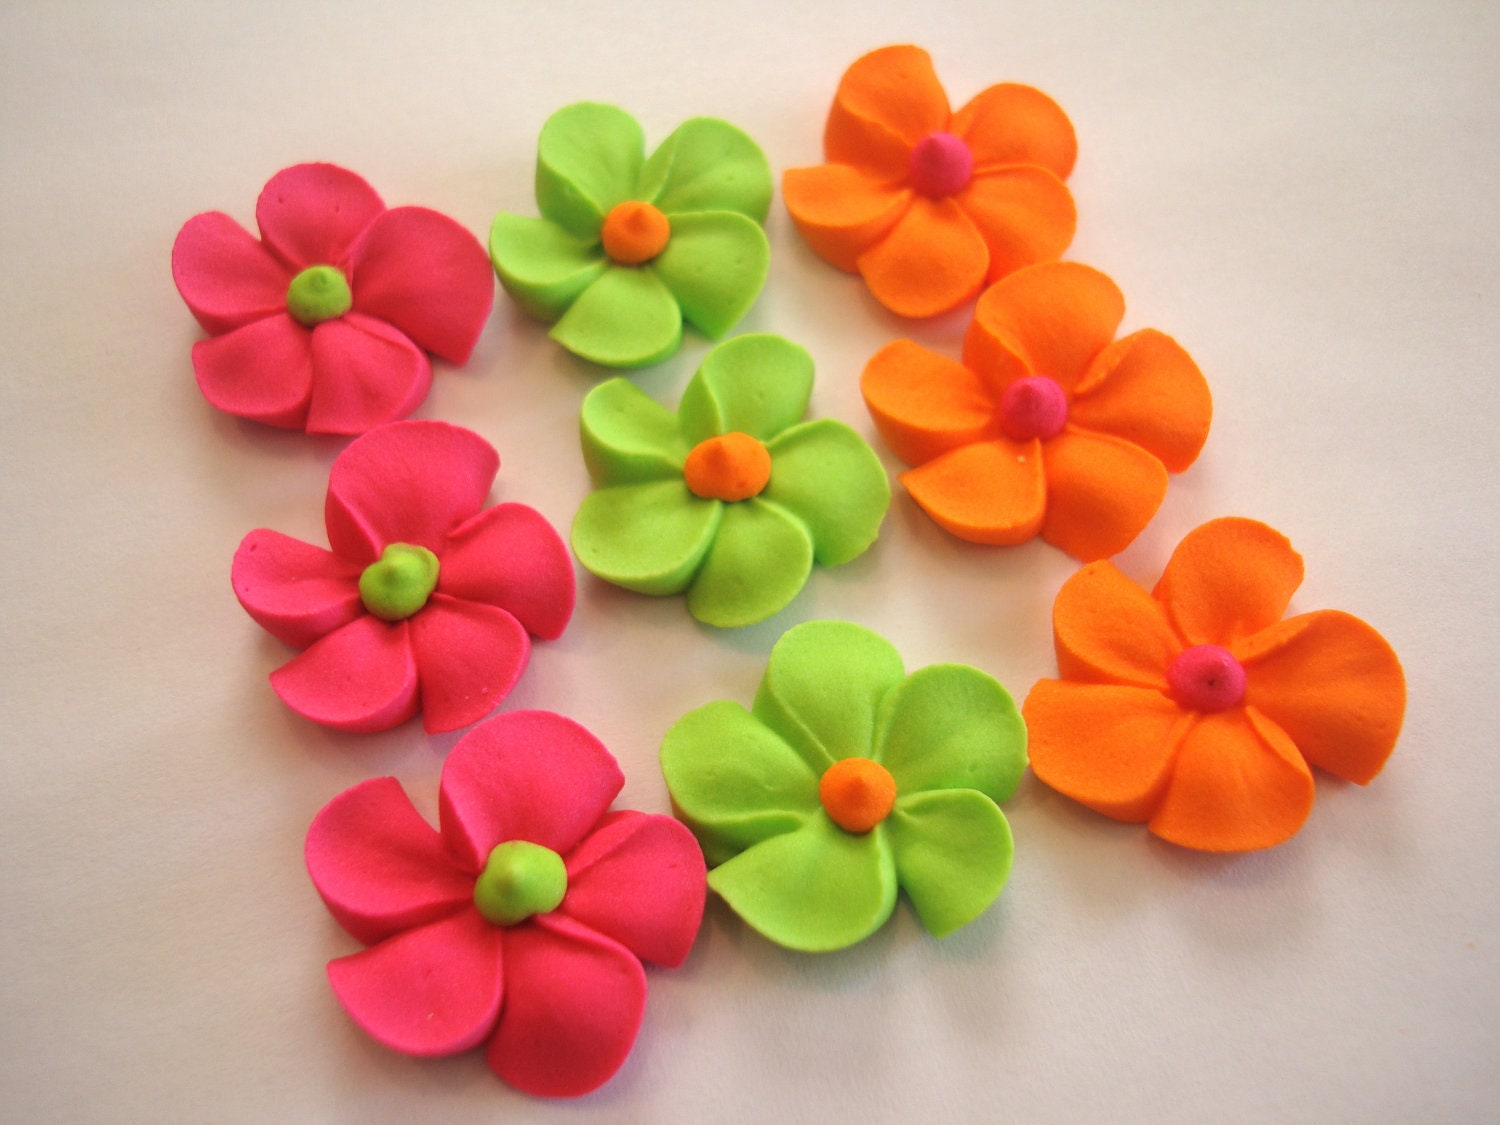 Royal Icing Flowers for Cake Decorating Lot of 150 by mochasof